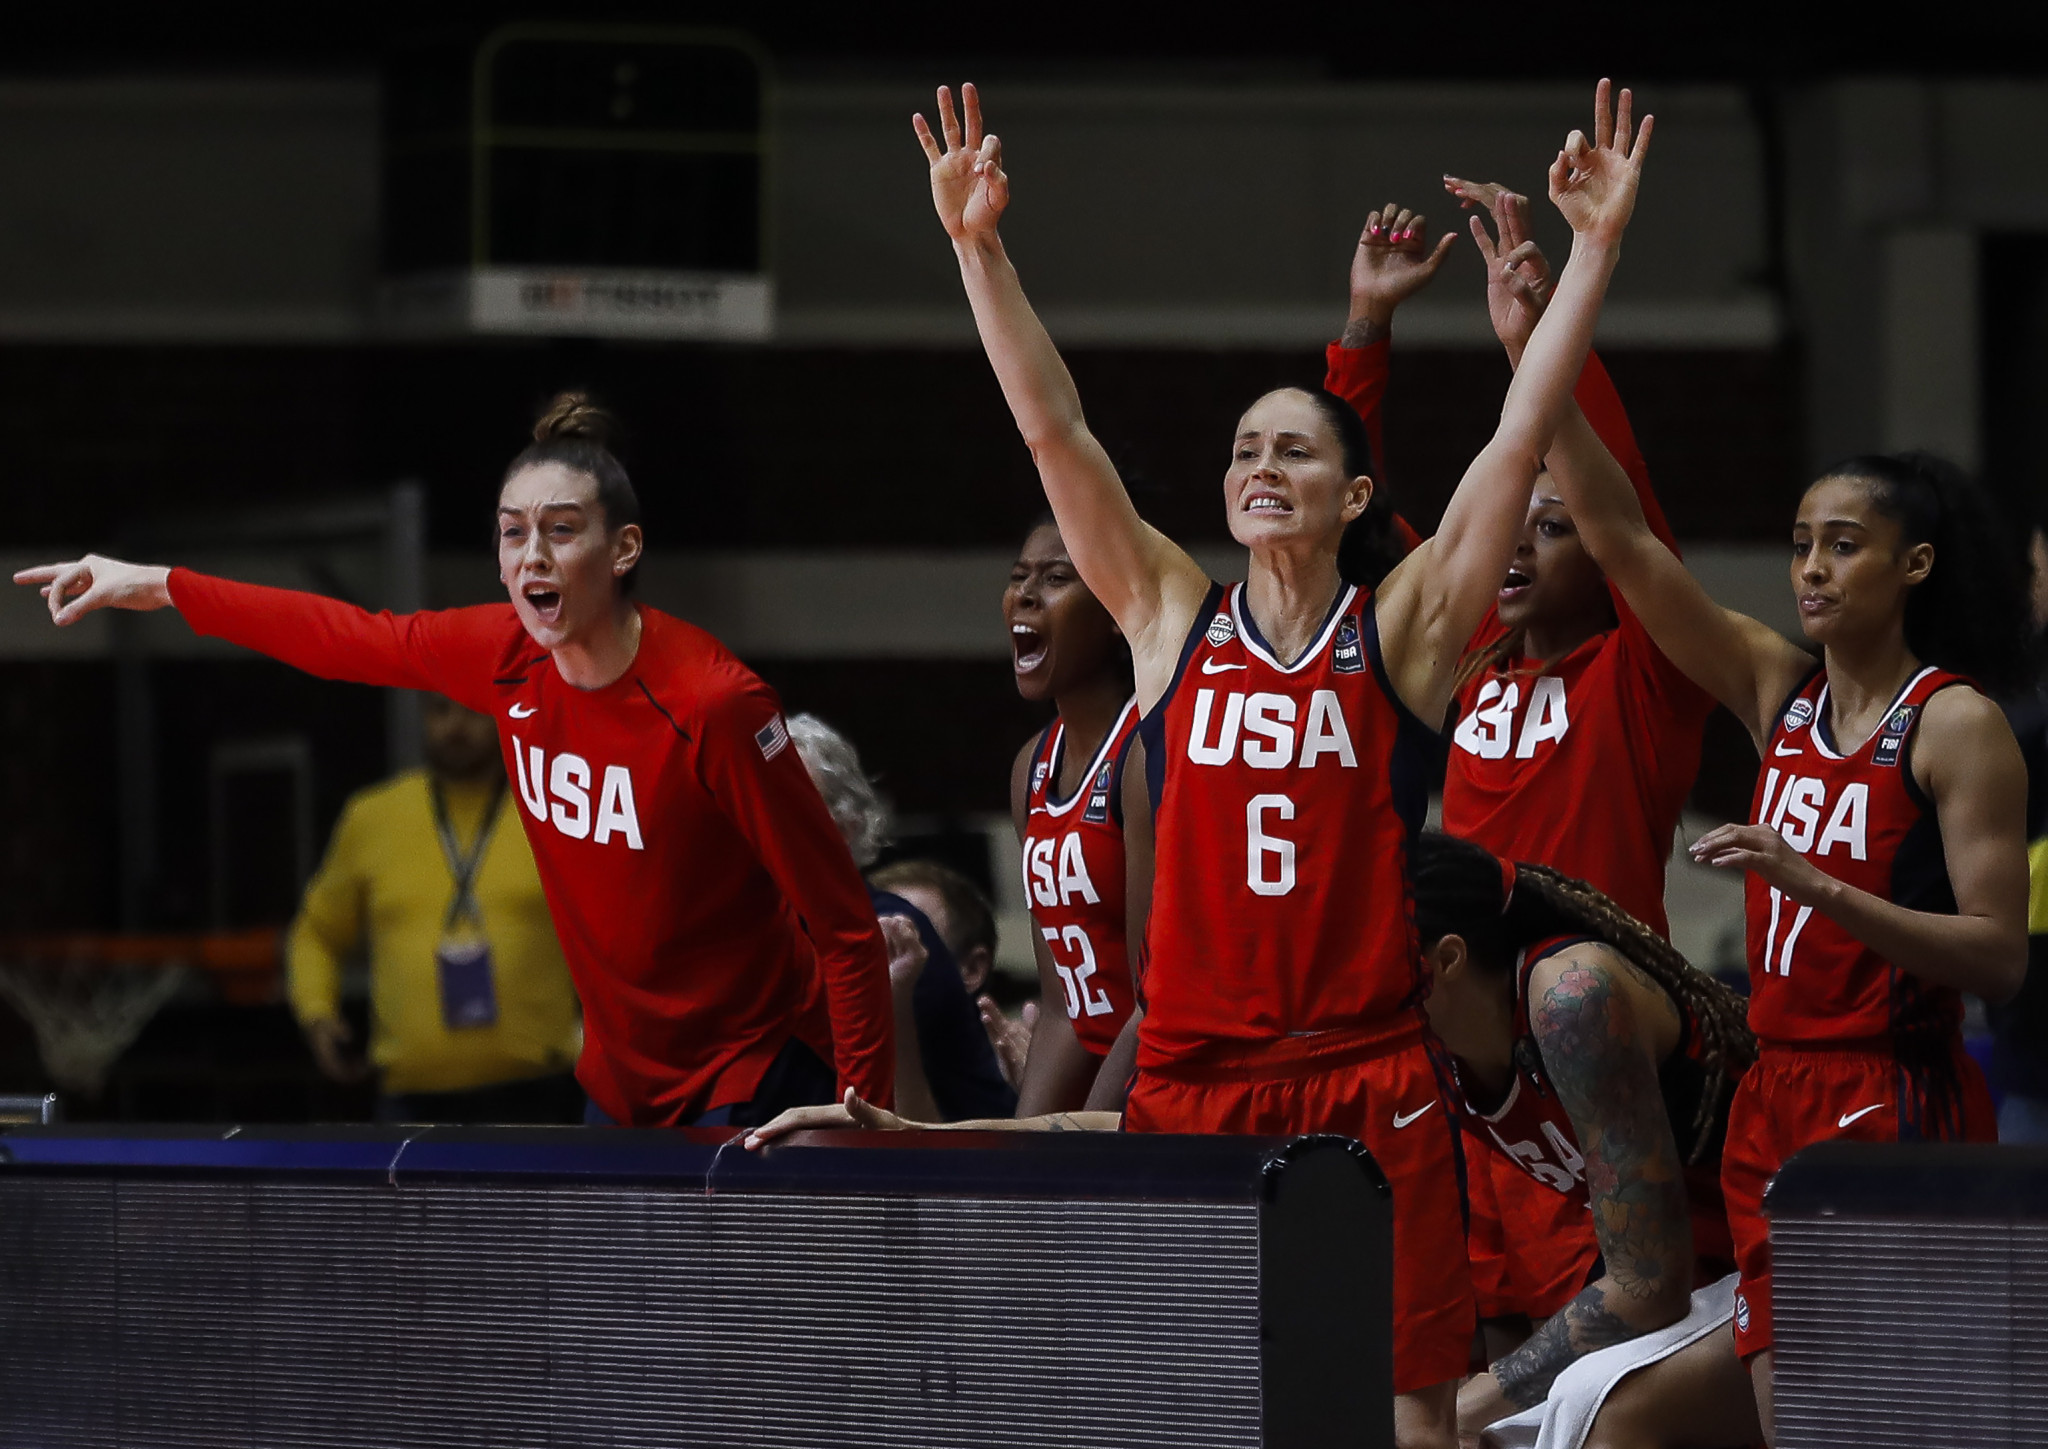 The United States were among the countries to reach the women's 3x3 basketball tournament at Tokyo 2020 ©Getty Images